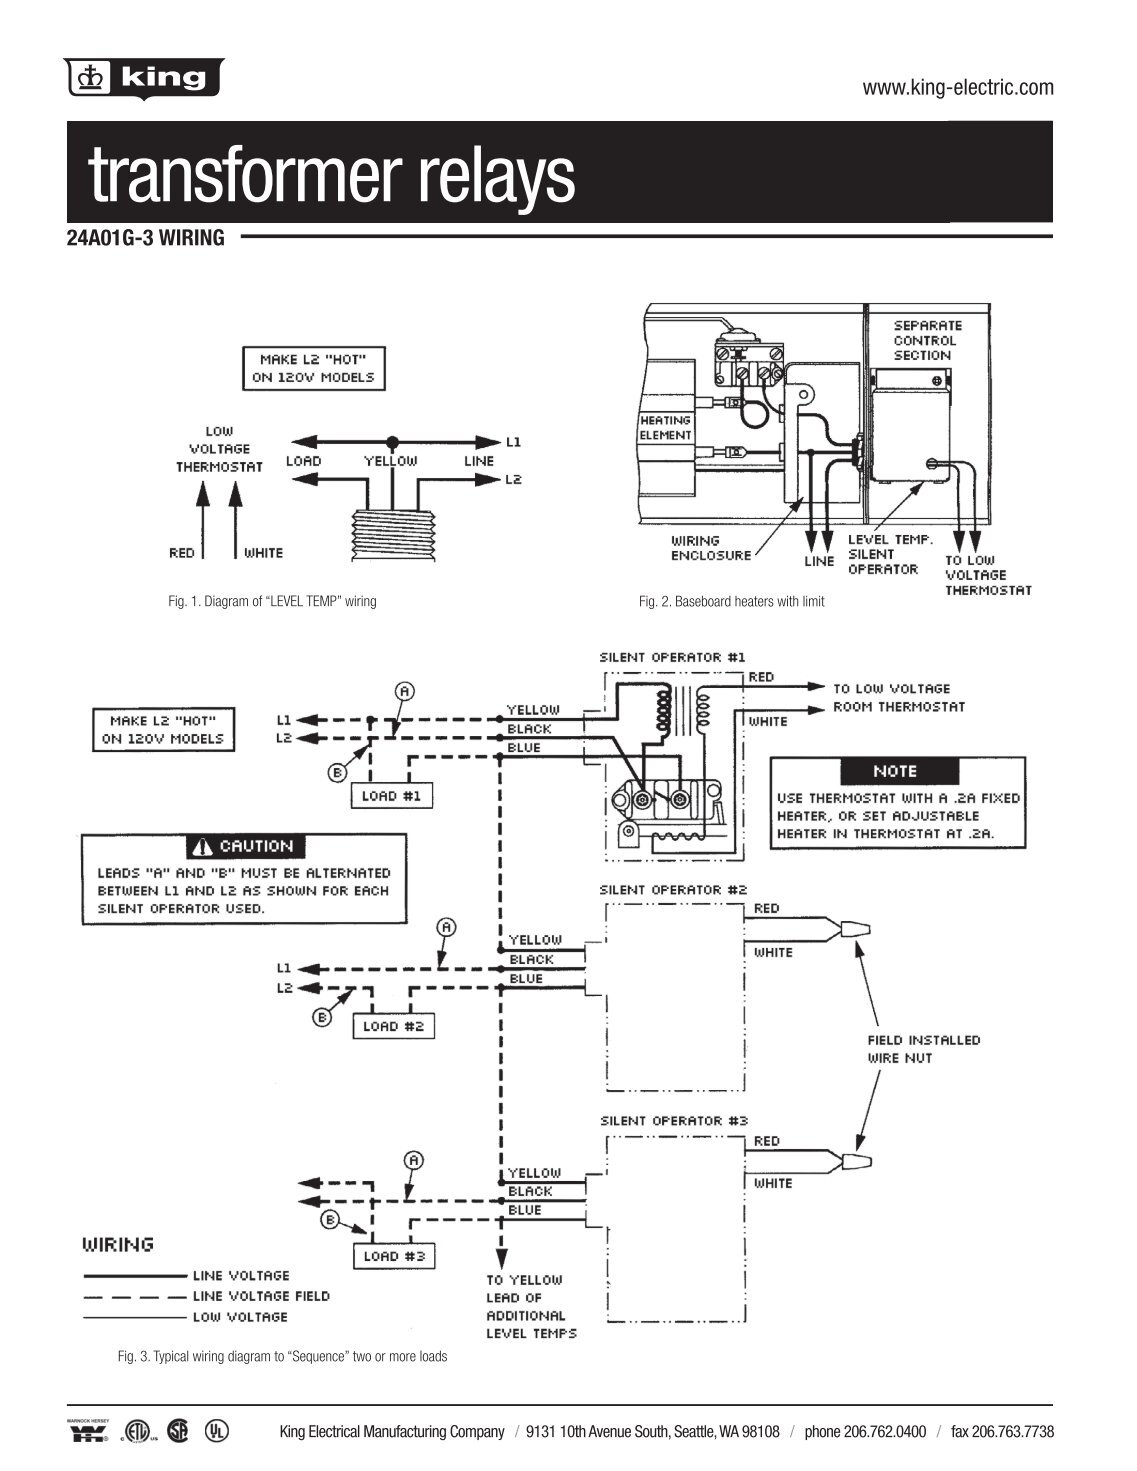 Kubota 2230 Wiring Diagram